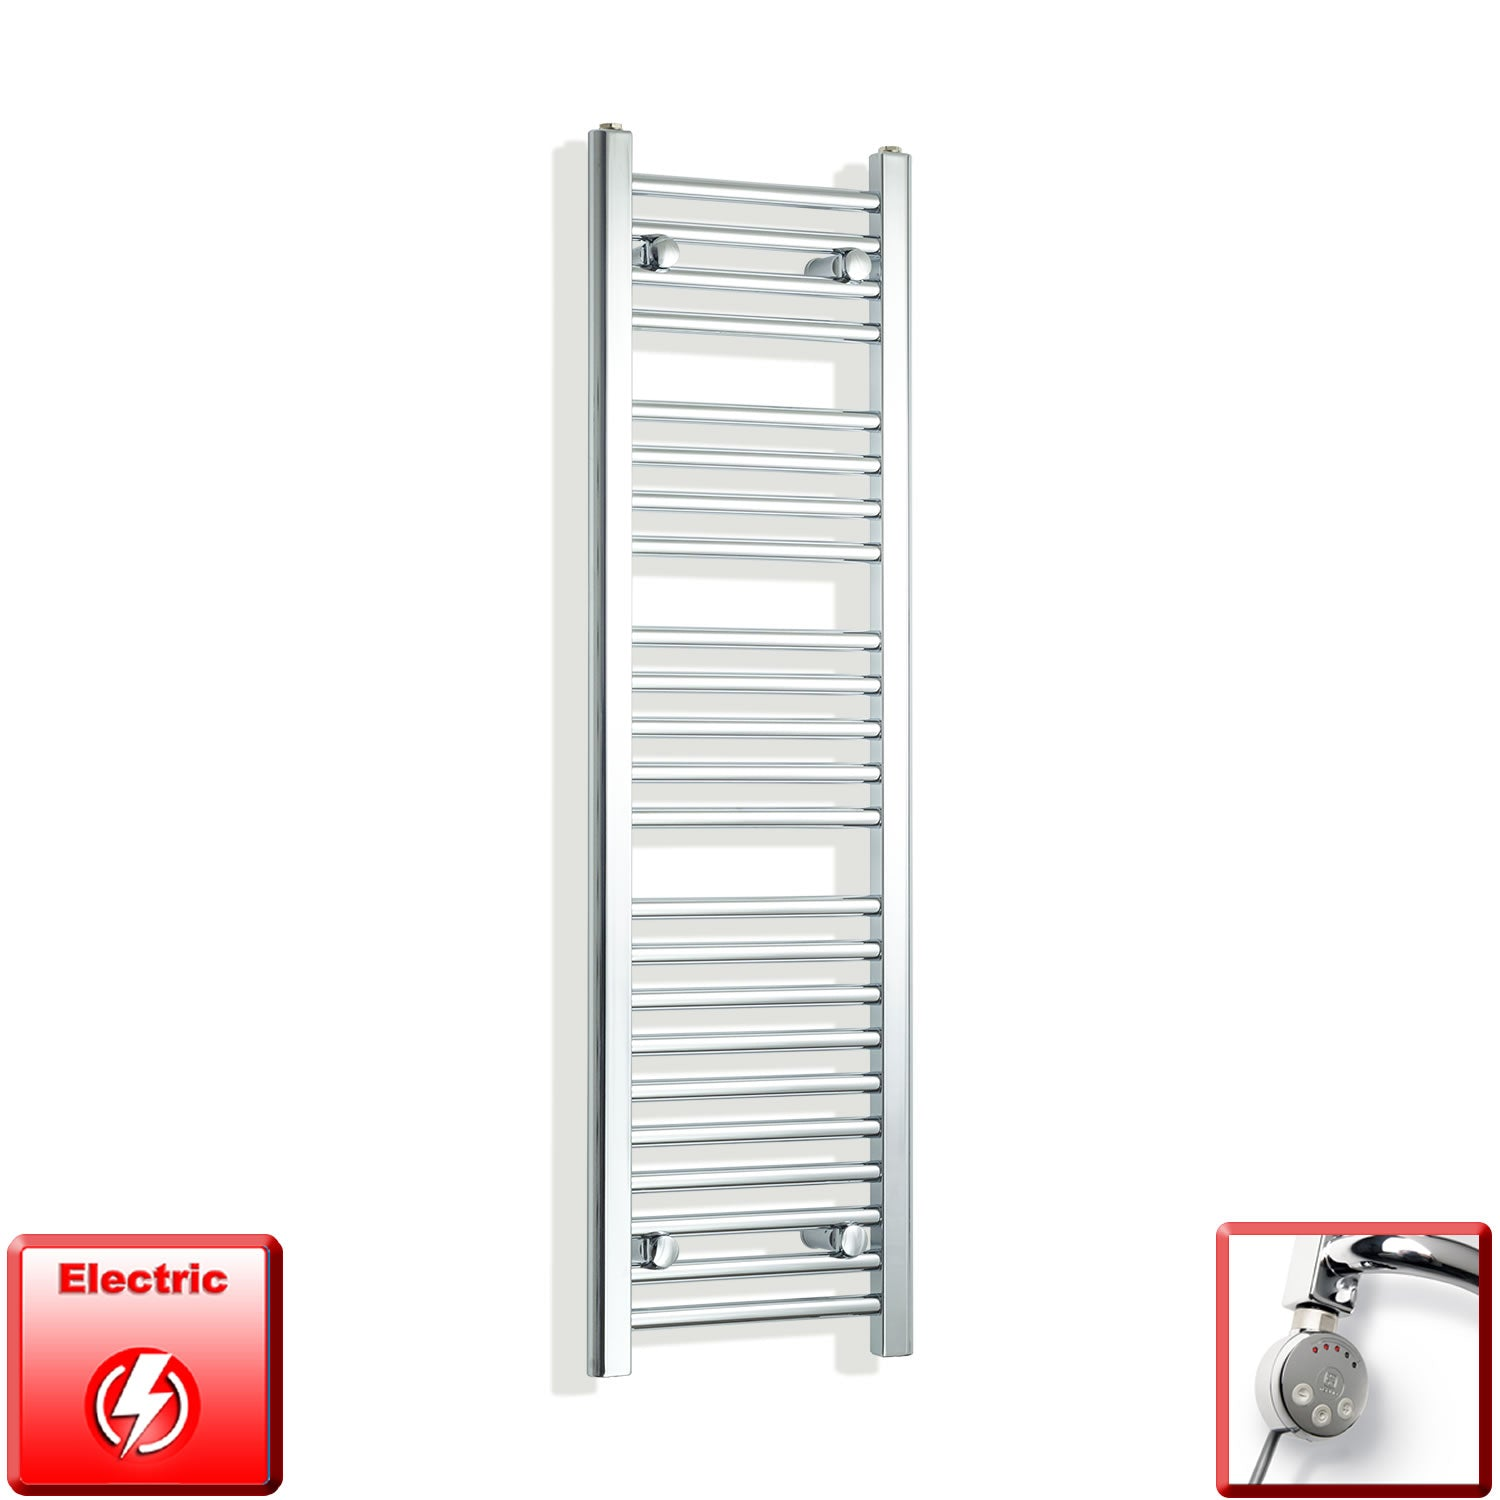 300mm Wide 1200mm High Flat Chrome Pre-Filled Electric Heated Towel Rail Radiator HTR,MEG Thermostatic Element